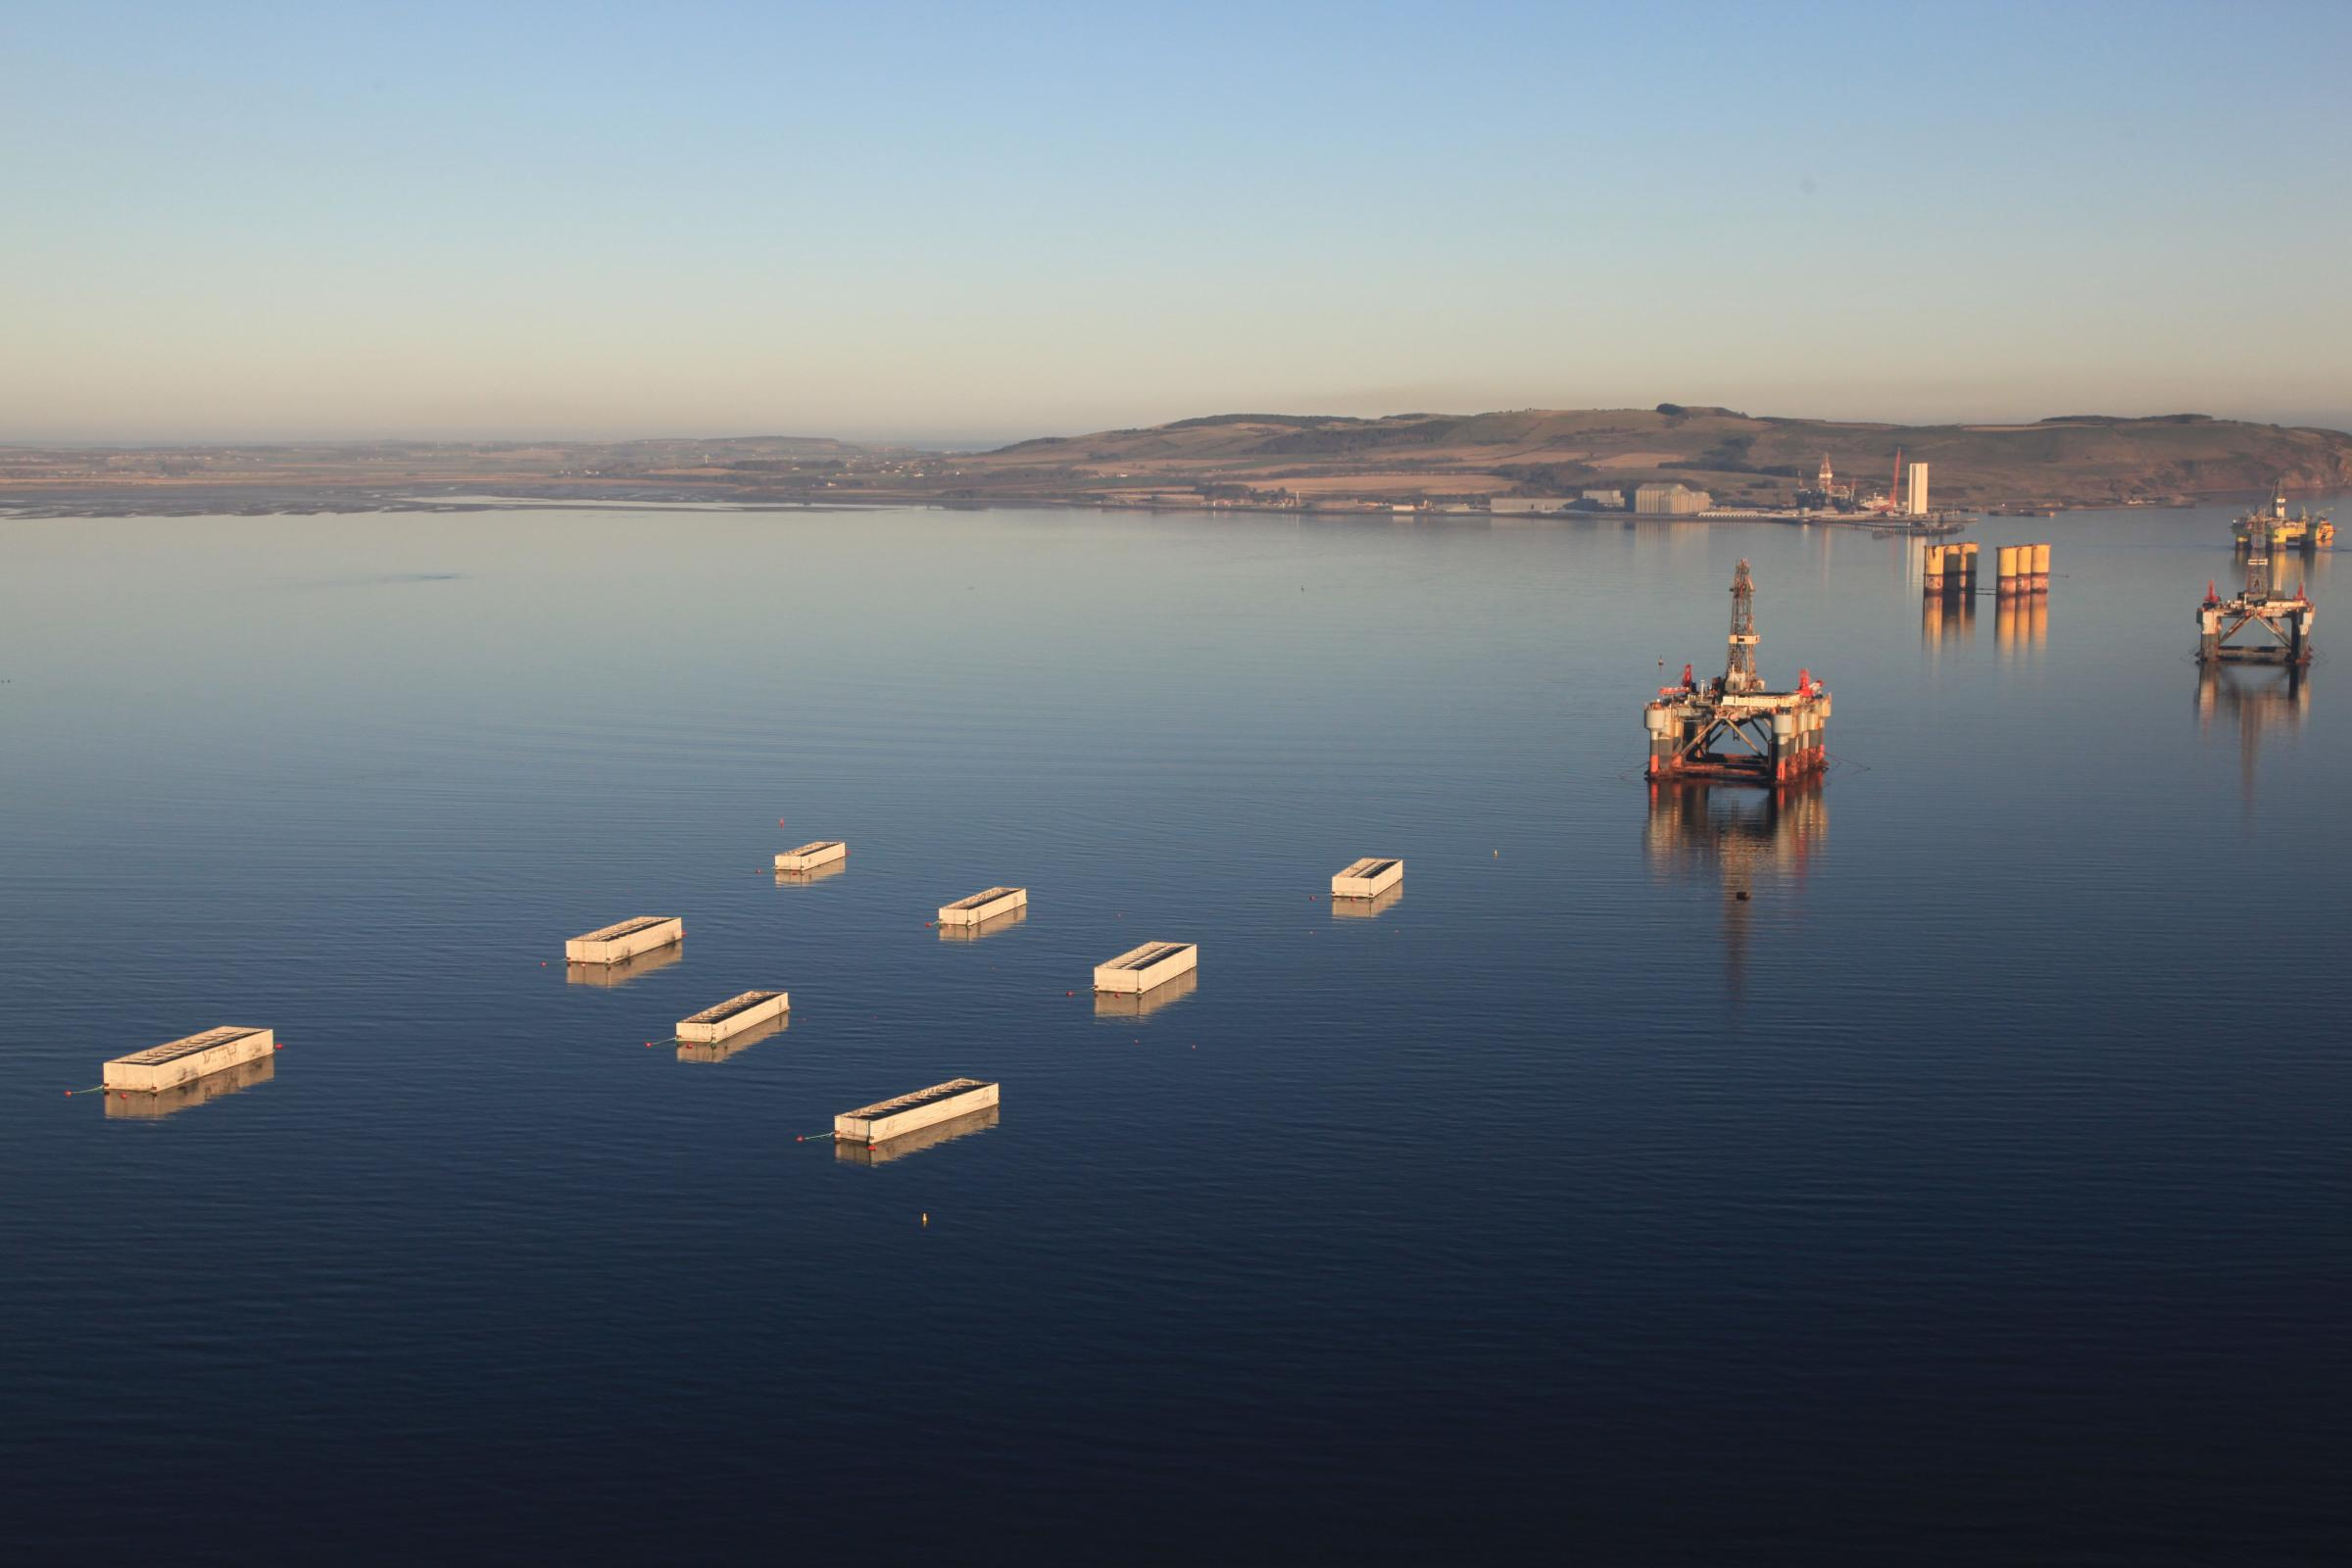 The caissons were towed up the Cromarty Firth from Spain